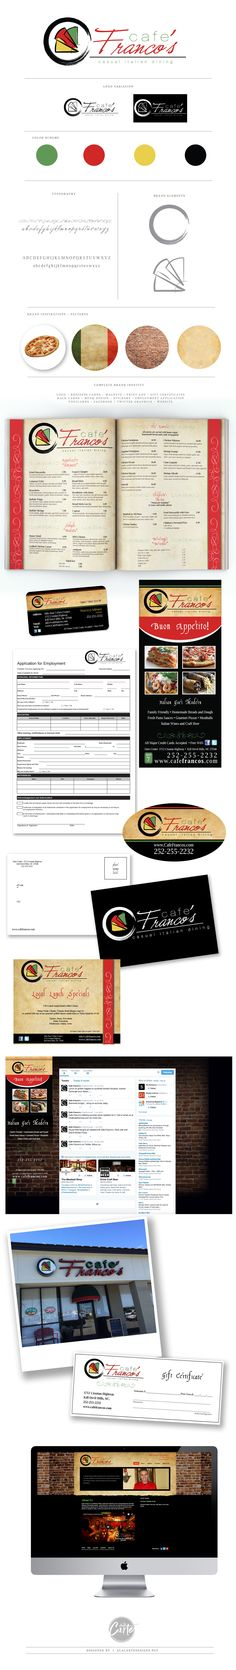 OBX Island Childcare Full Brand Development Logo Business Cars - Vehicle decals for business application